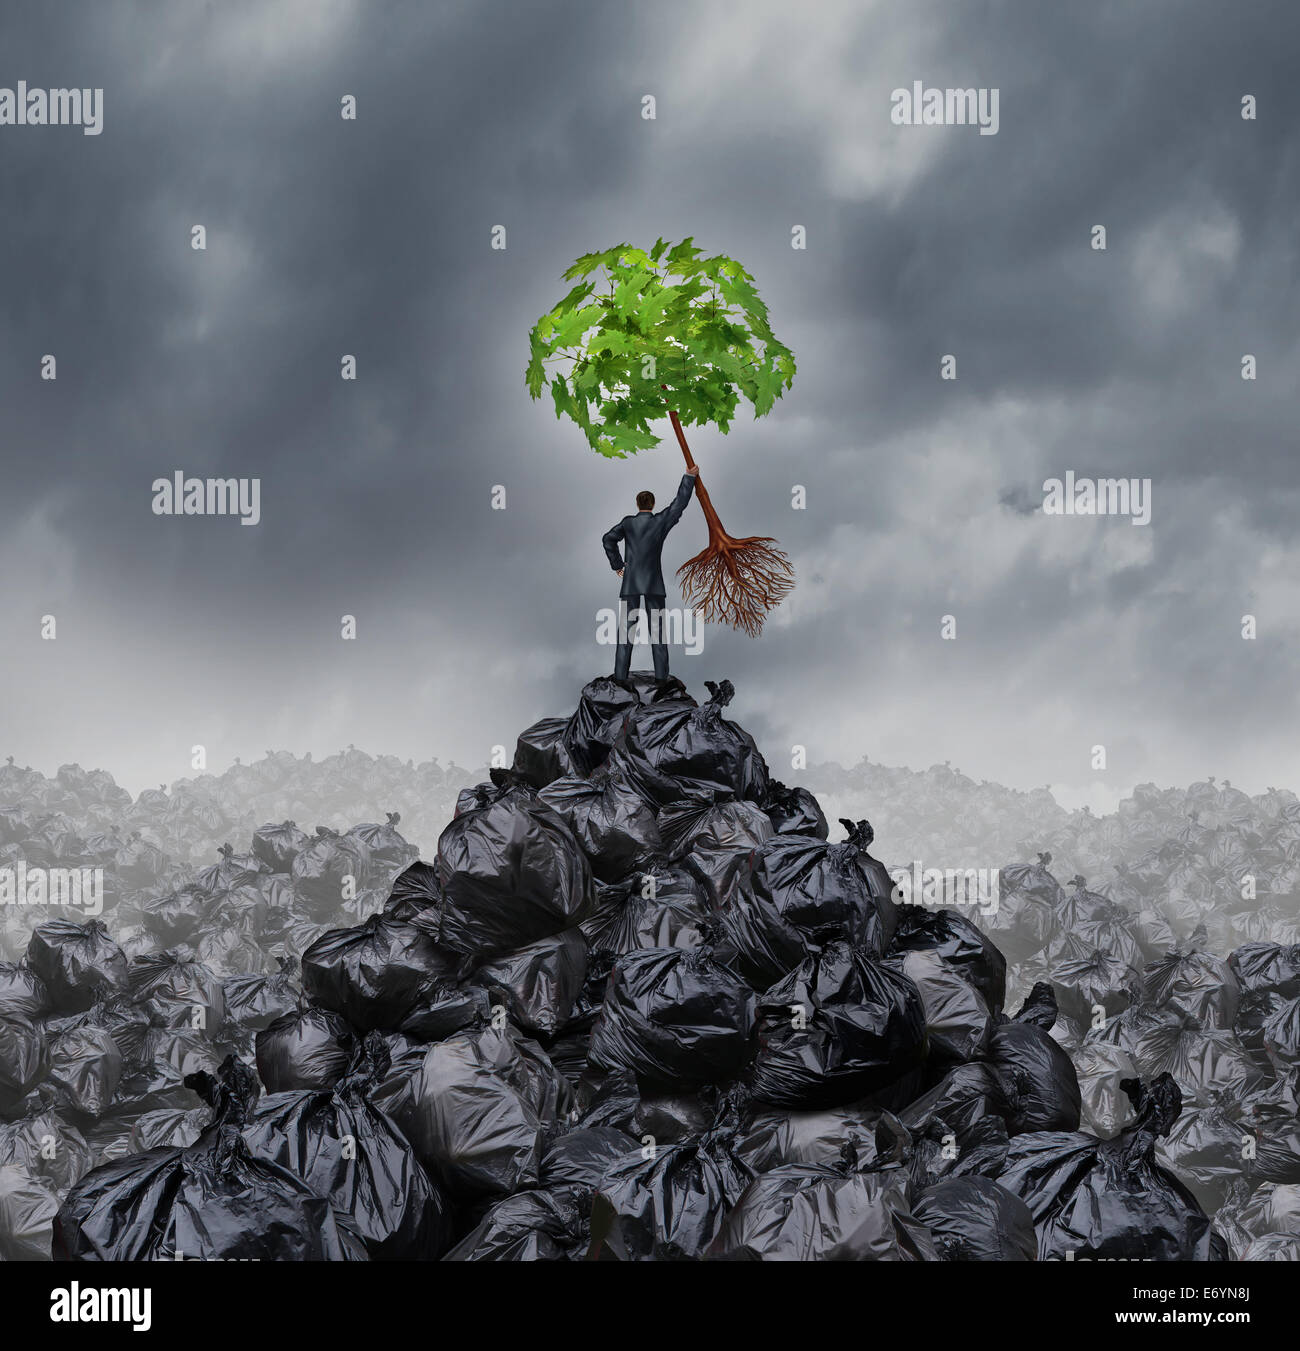 Green businessman concept as a man on top of a mountain heap of garbage holding up a green leaf tree with roots - Stock Image